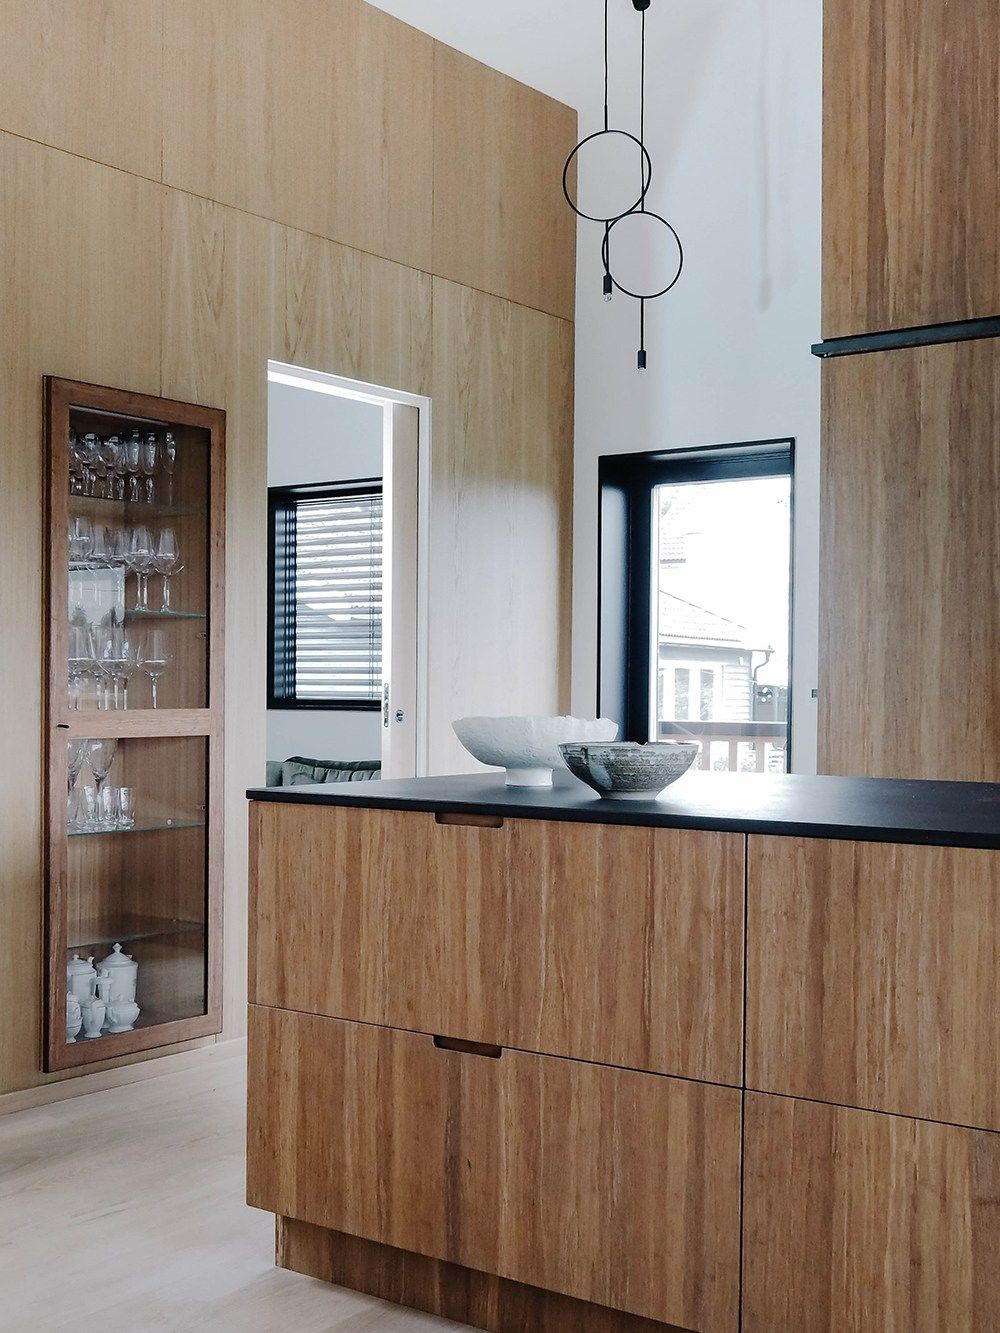 Kitchen made out of Bamboo by Ask og Eng   Bamboo kitchen ...